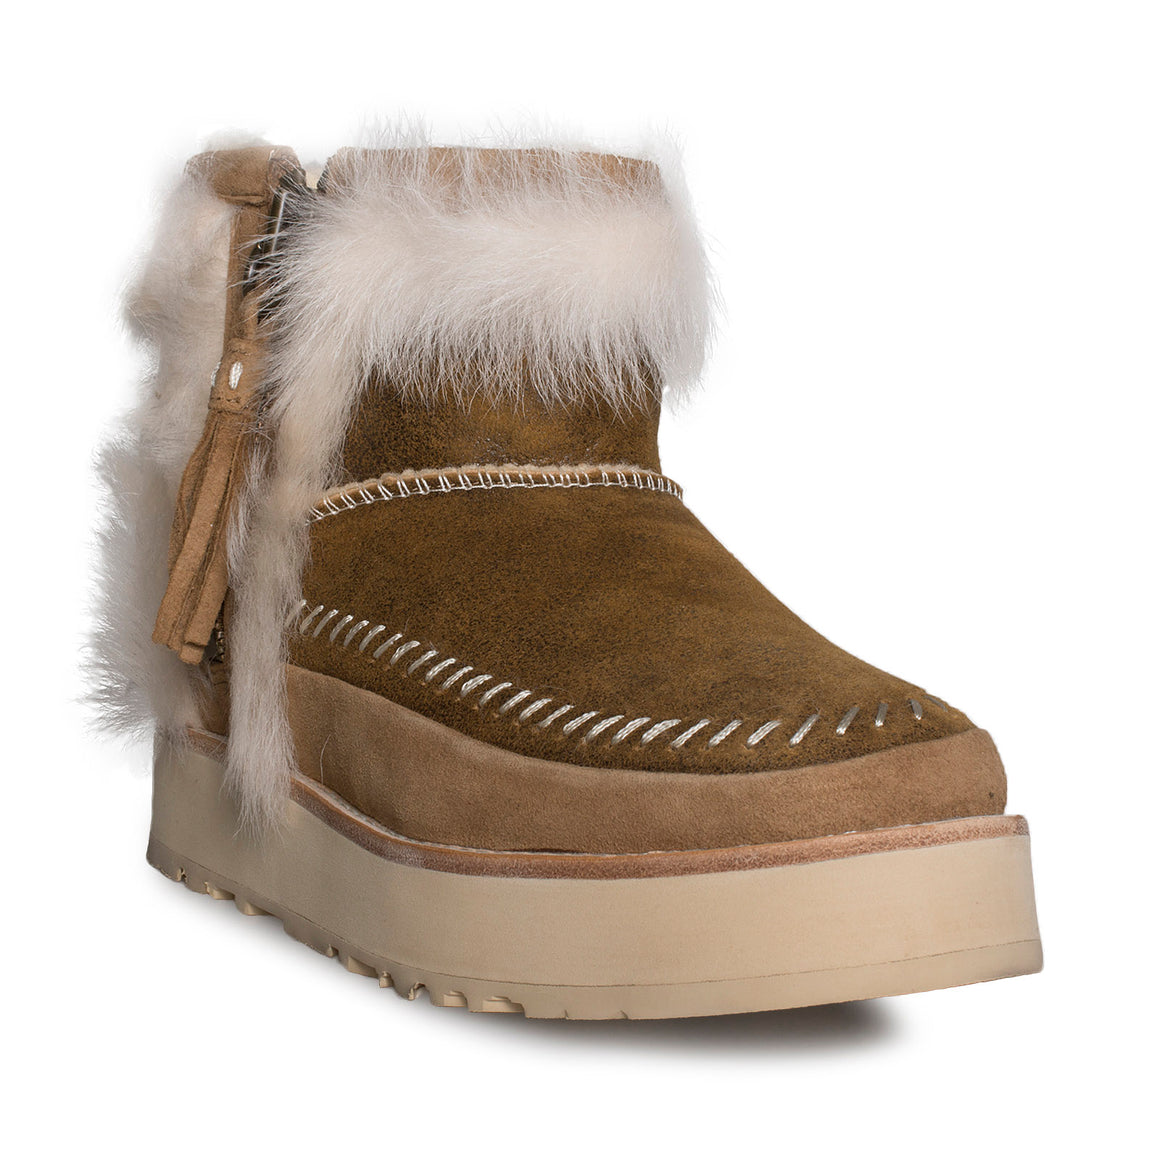 UGG Fluff Punk Boot Chestnut - Women's